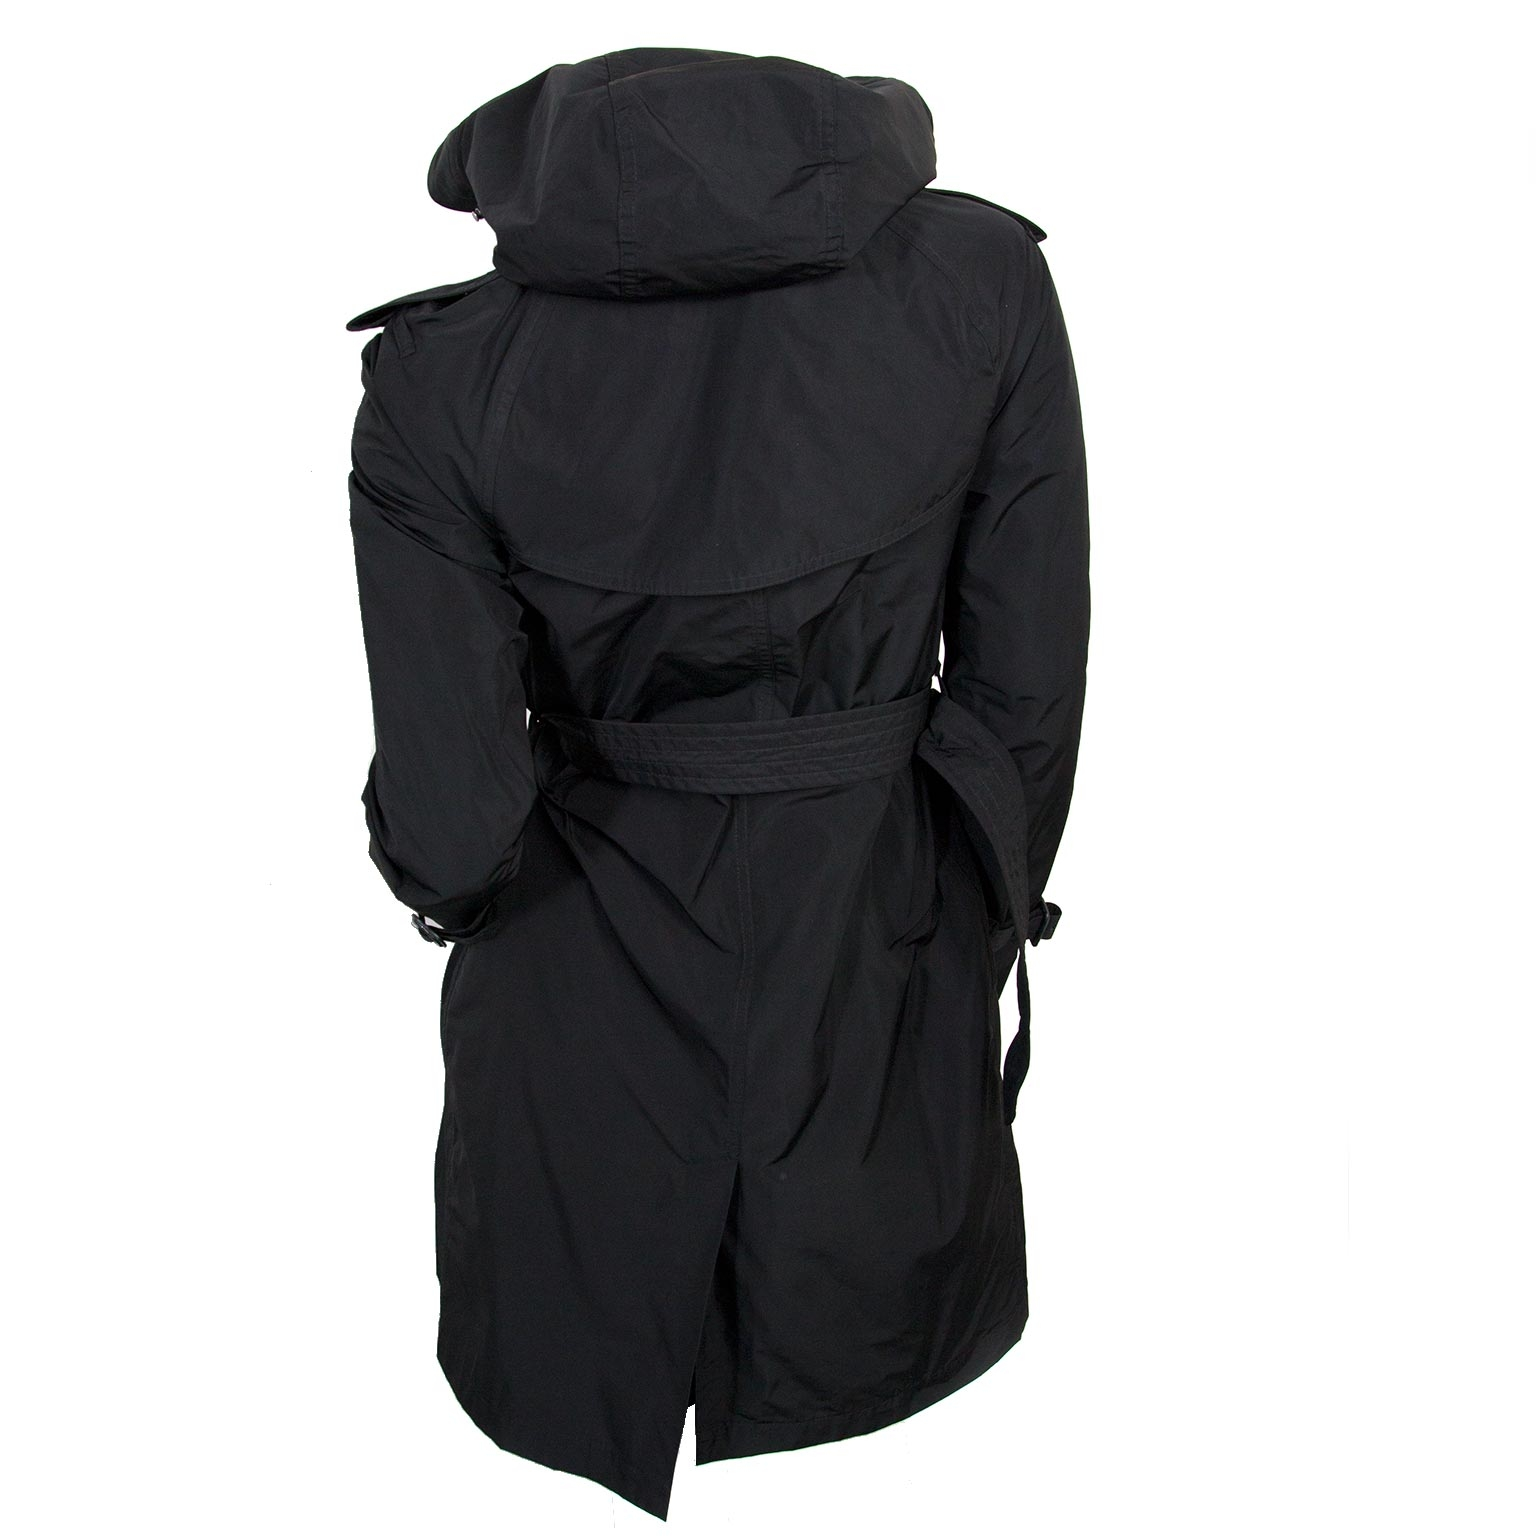 Burberry Black Trench Coat for sale online at Labellov